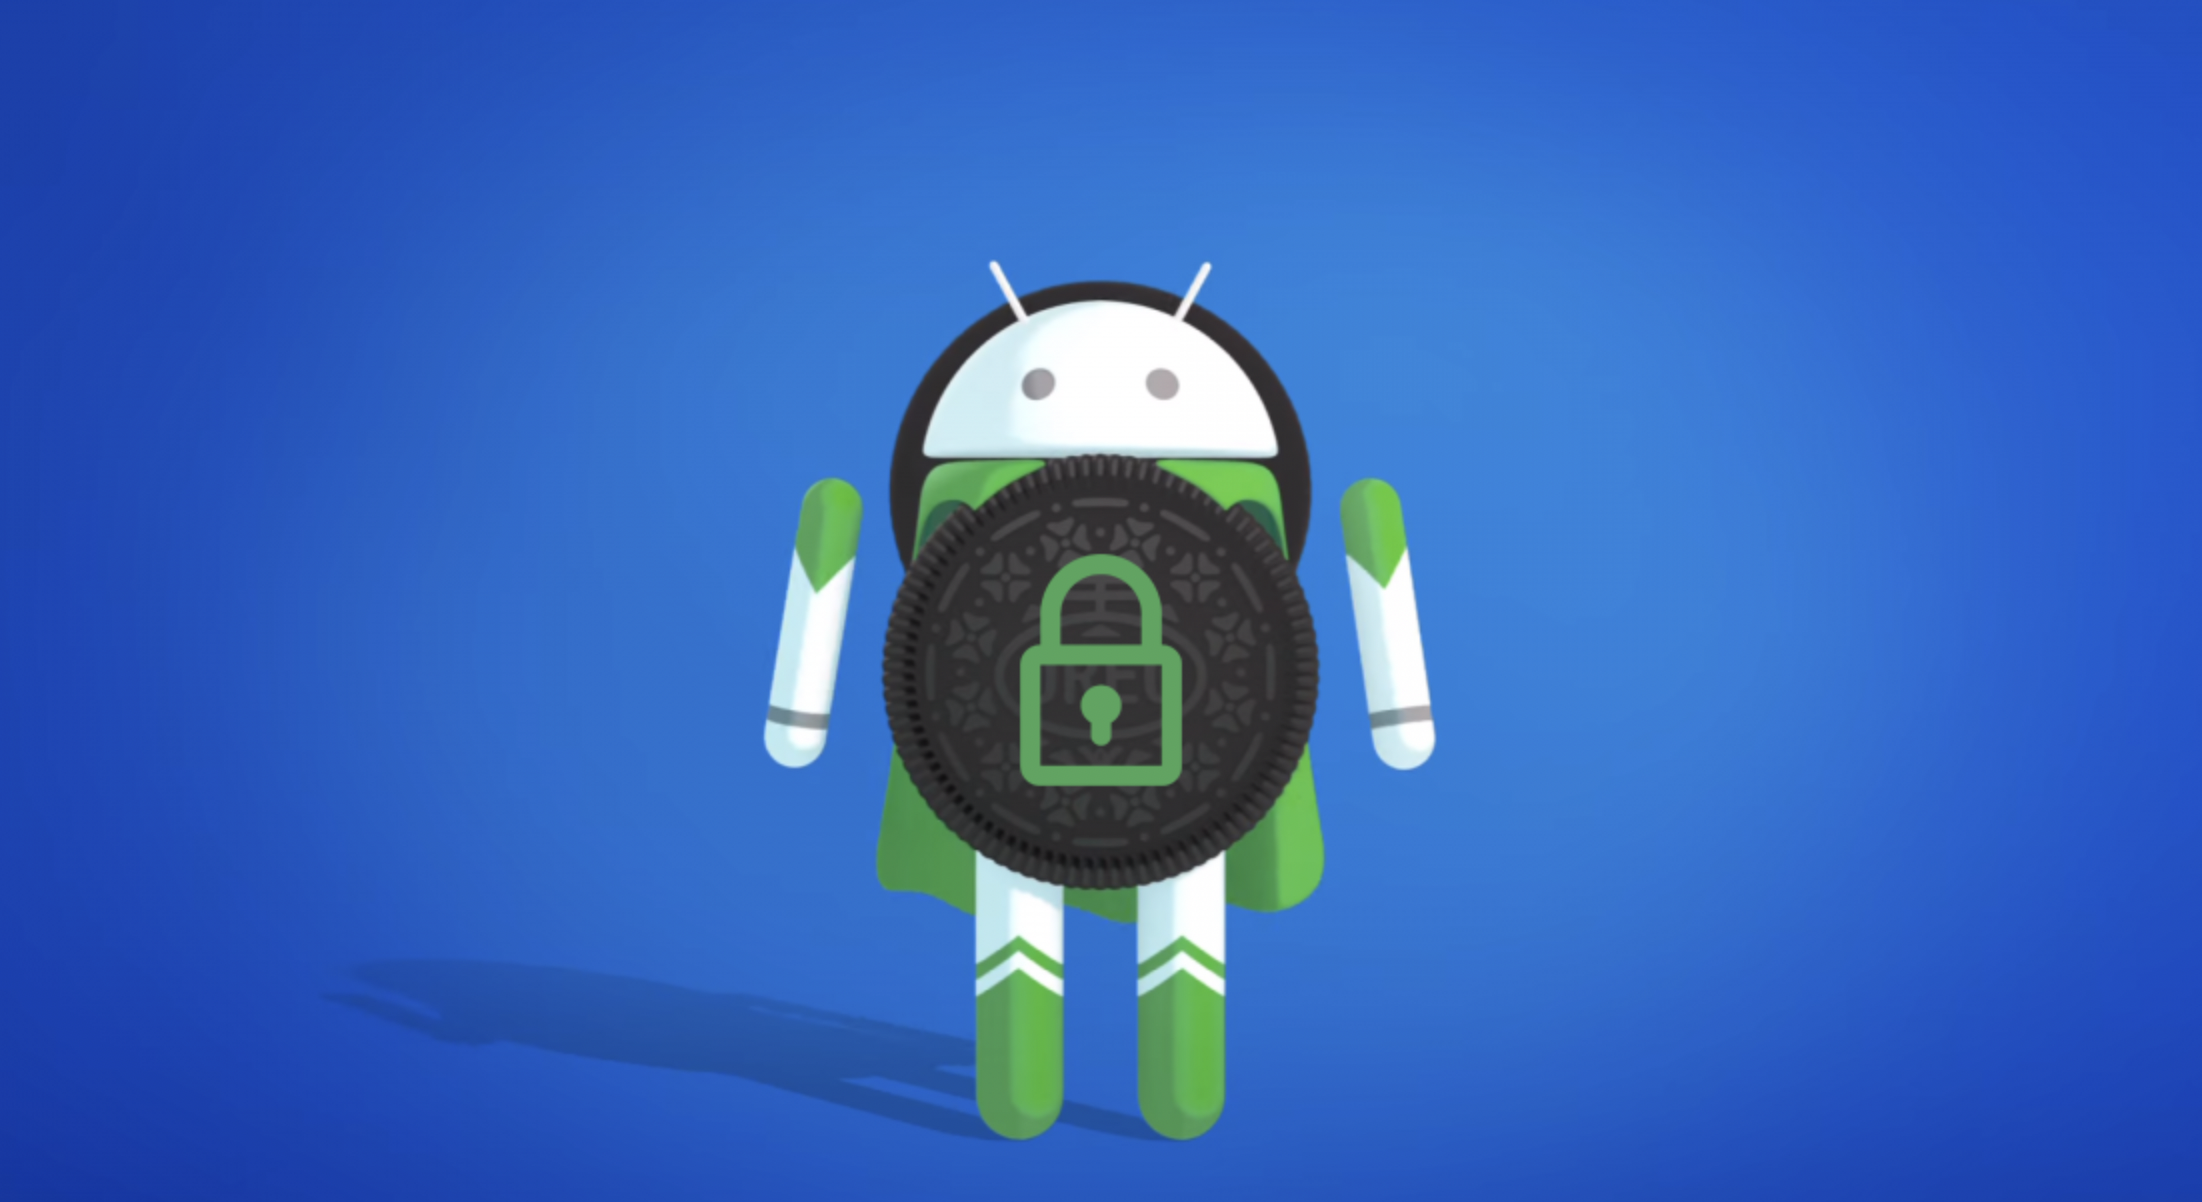 Android Safety: 5 Overlooked Ways to Protect Your Device